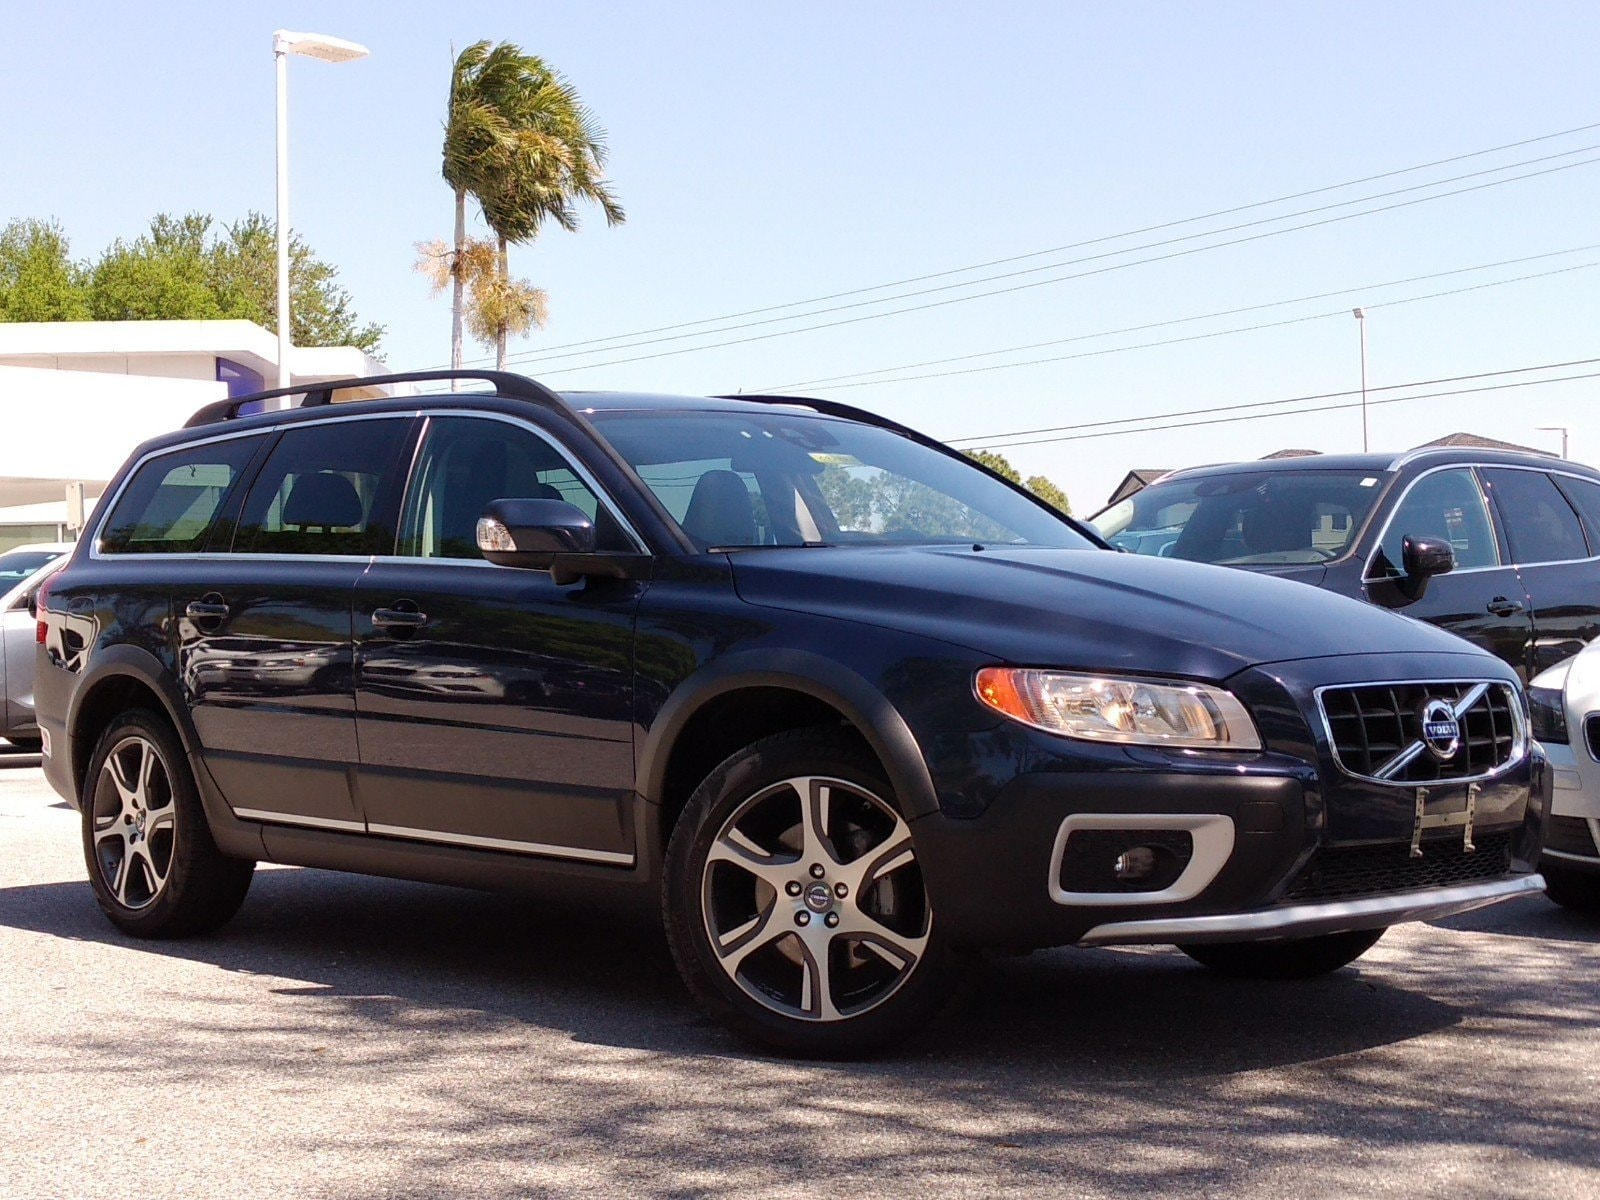 2012 Volvo XC70 T6 Platinum for sale in Sarasota, FL